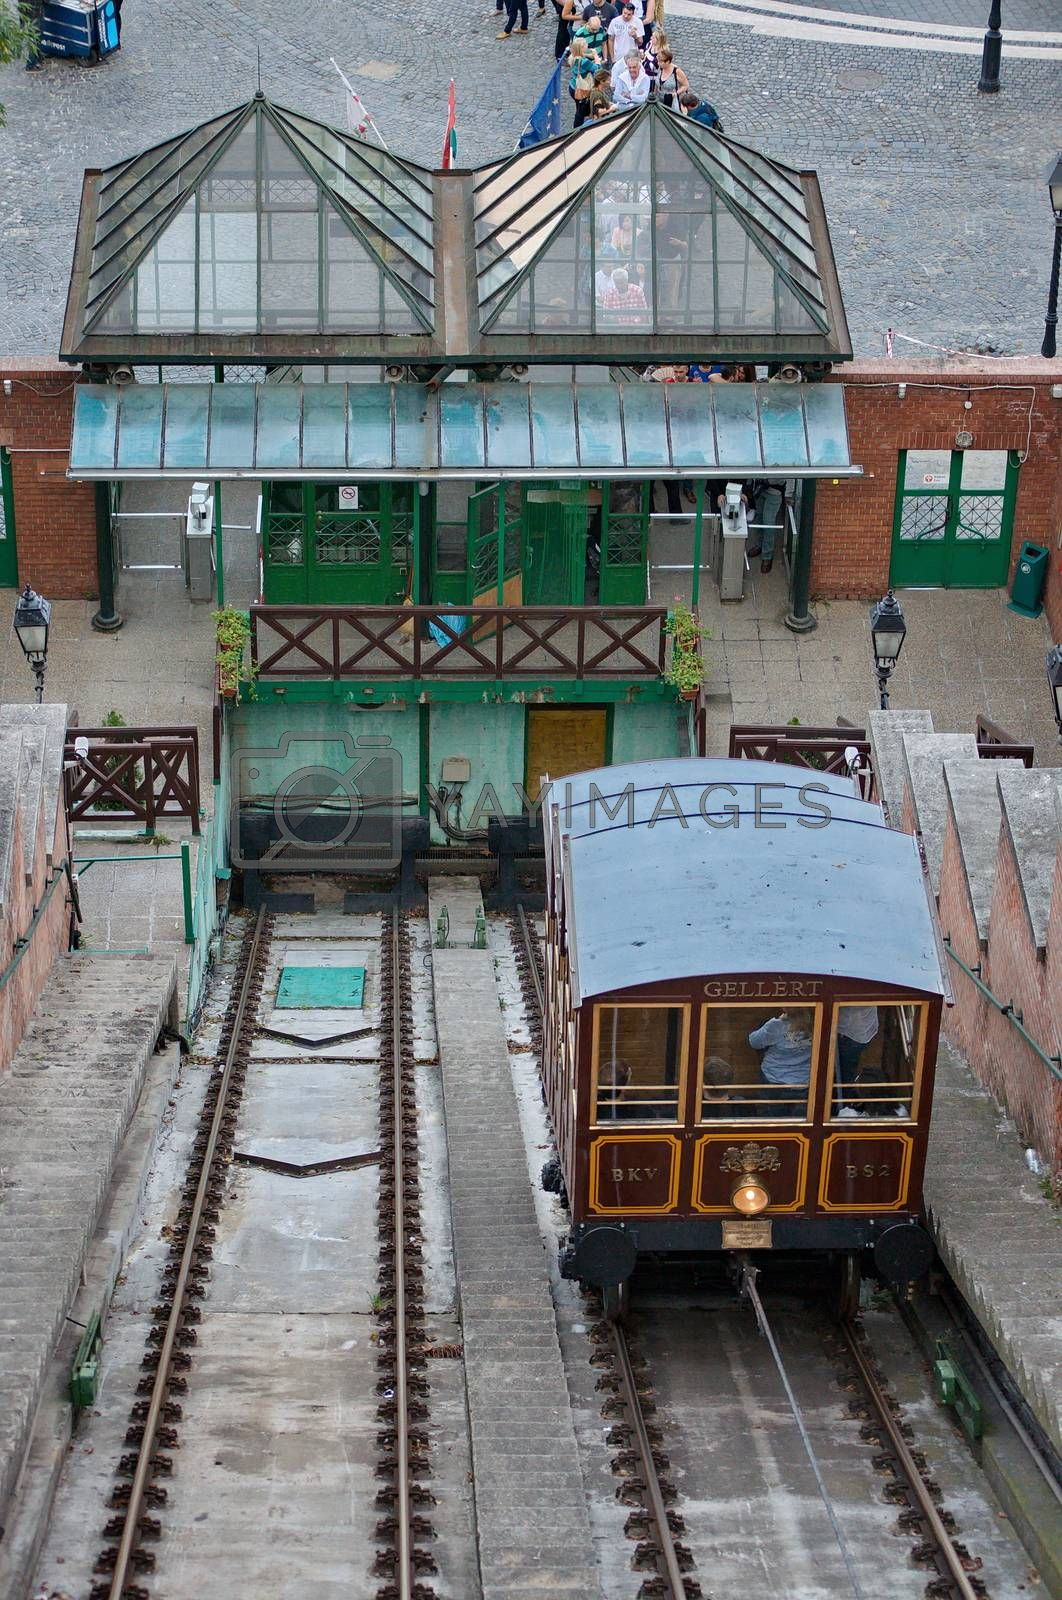 Royalty free image of BUDAPEST - OCTOBER 28: Funicular in Budapest is part of the UNES by anderm